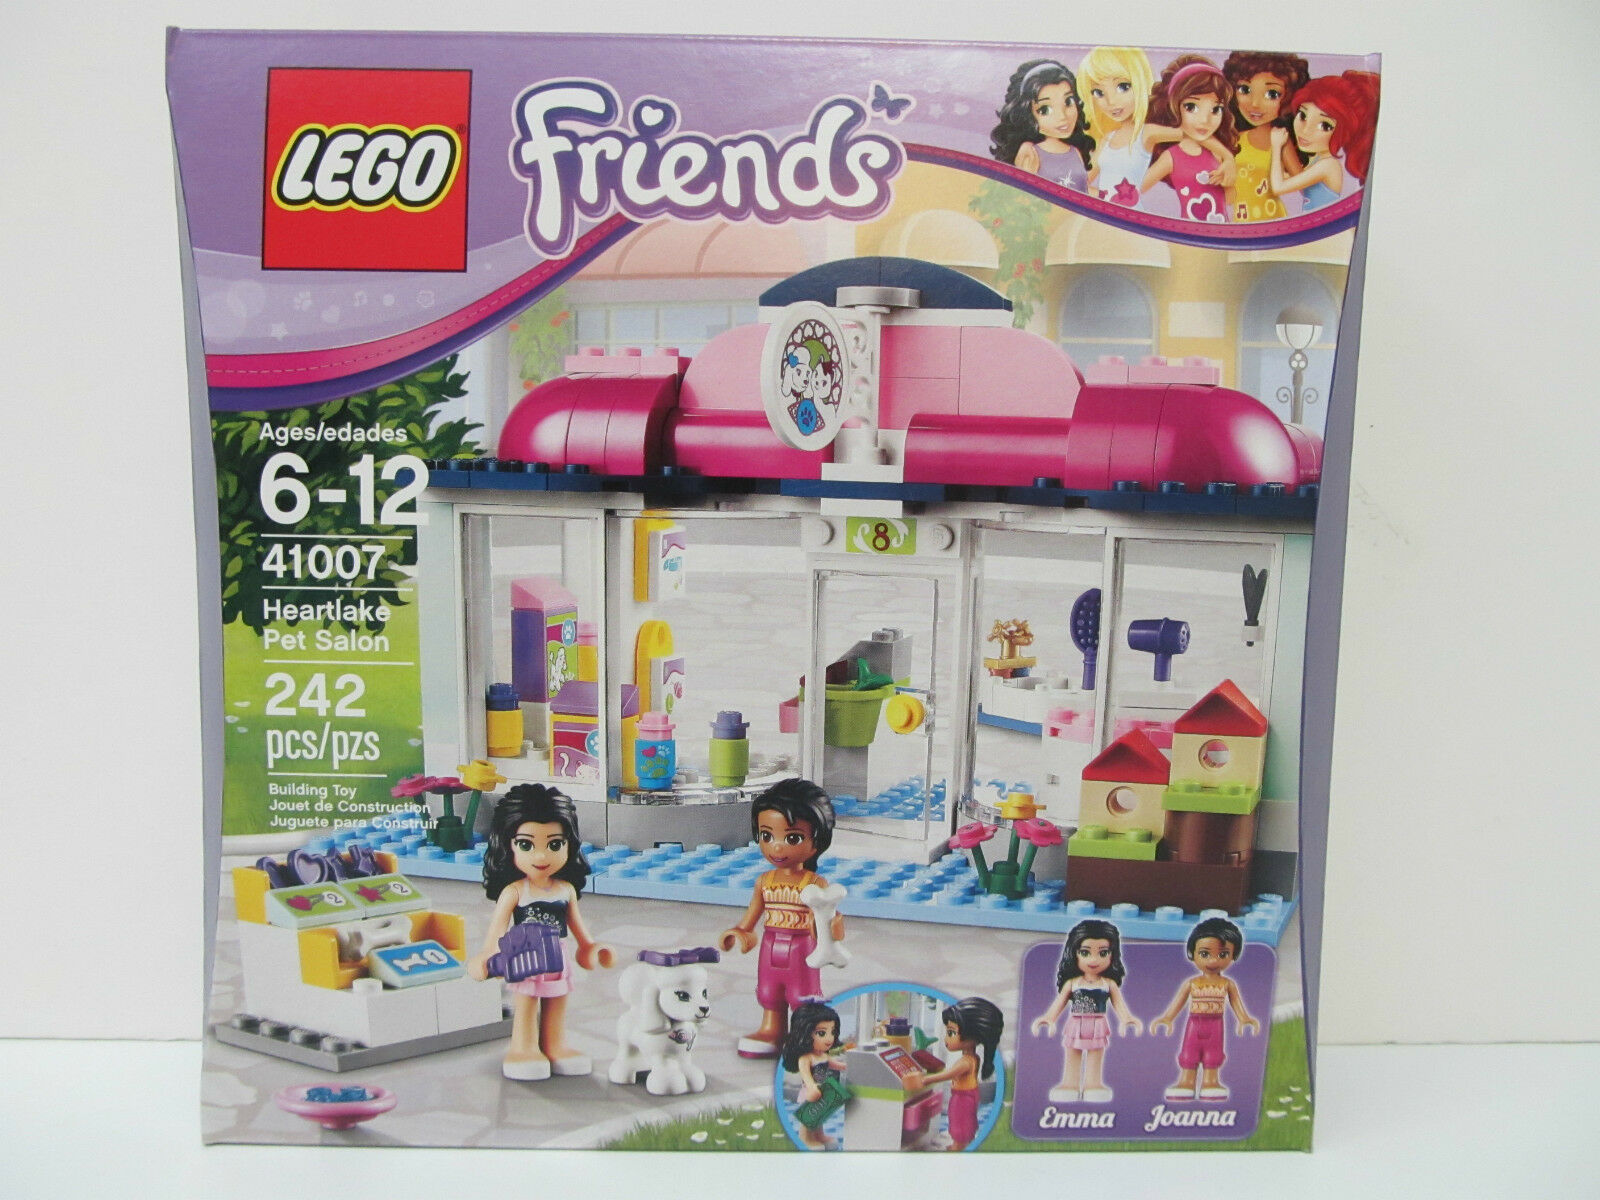 LEGO - FRIENDS HEARTAKE PET SALON - 242 piece set - Ages 6 - 12 years